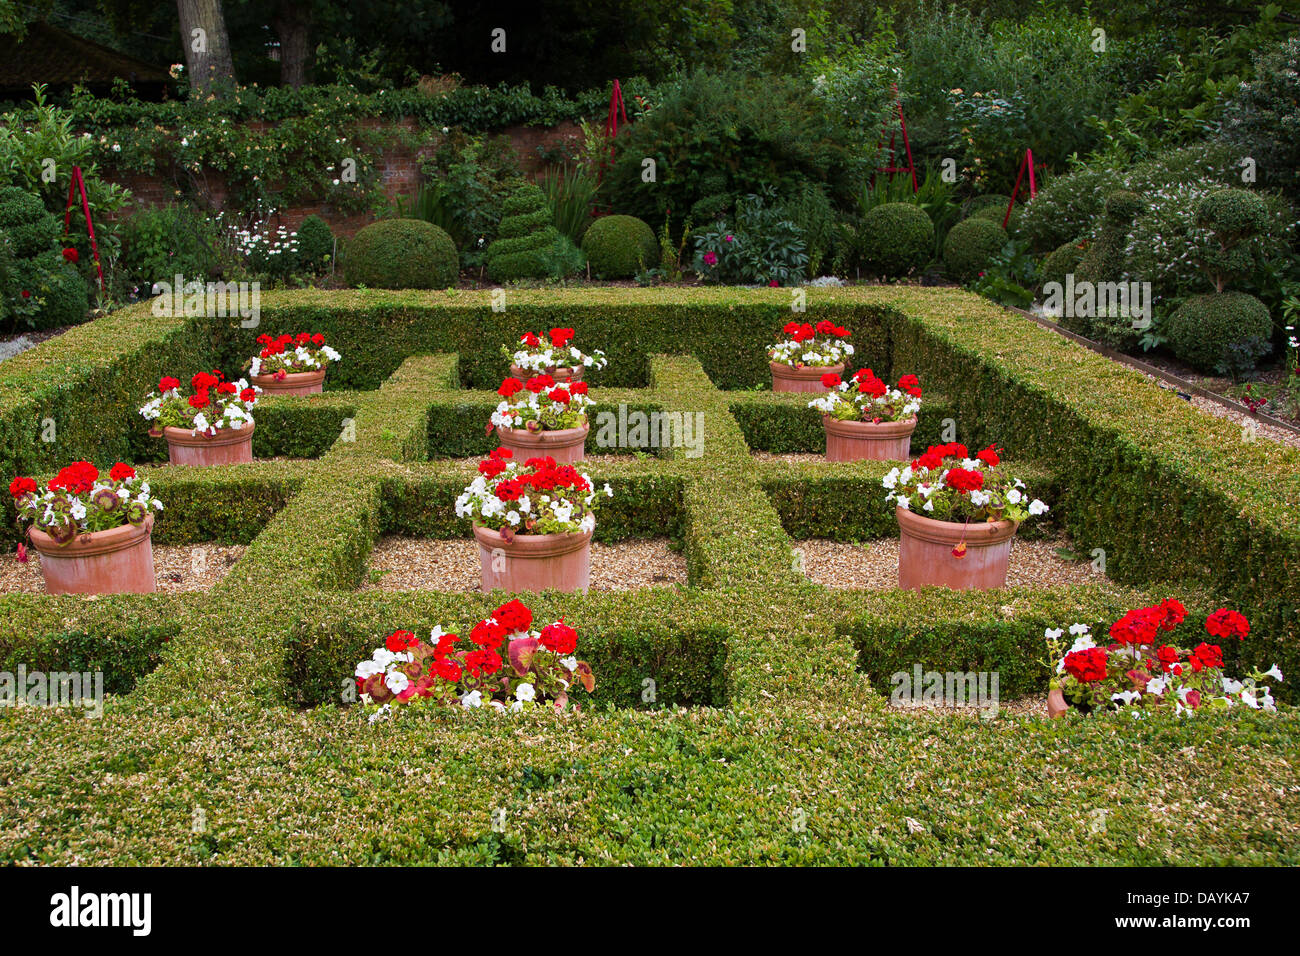 west green house alice garden box hedges form a checkerboard with stock photo 58385551 alamy. Black Bedroom Furniture Sets. Home Design Ideas